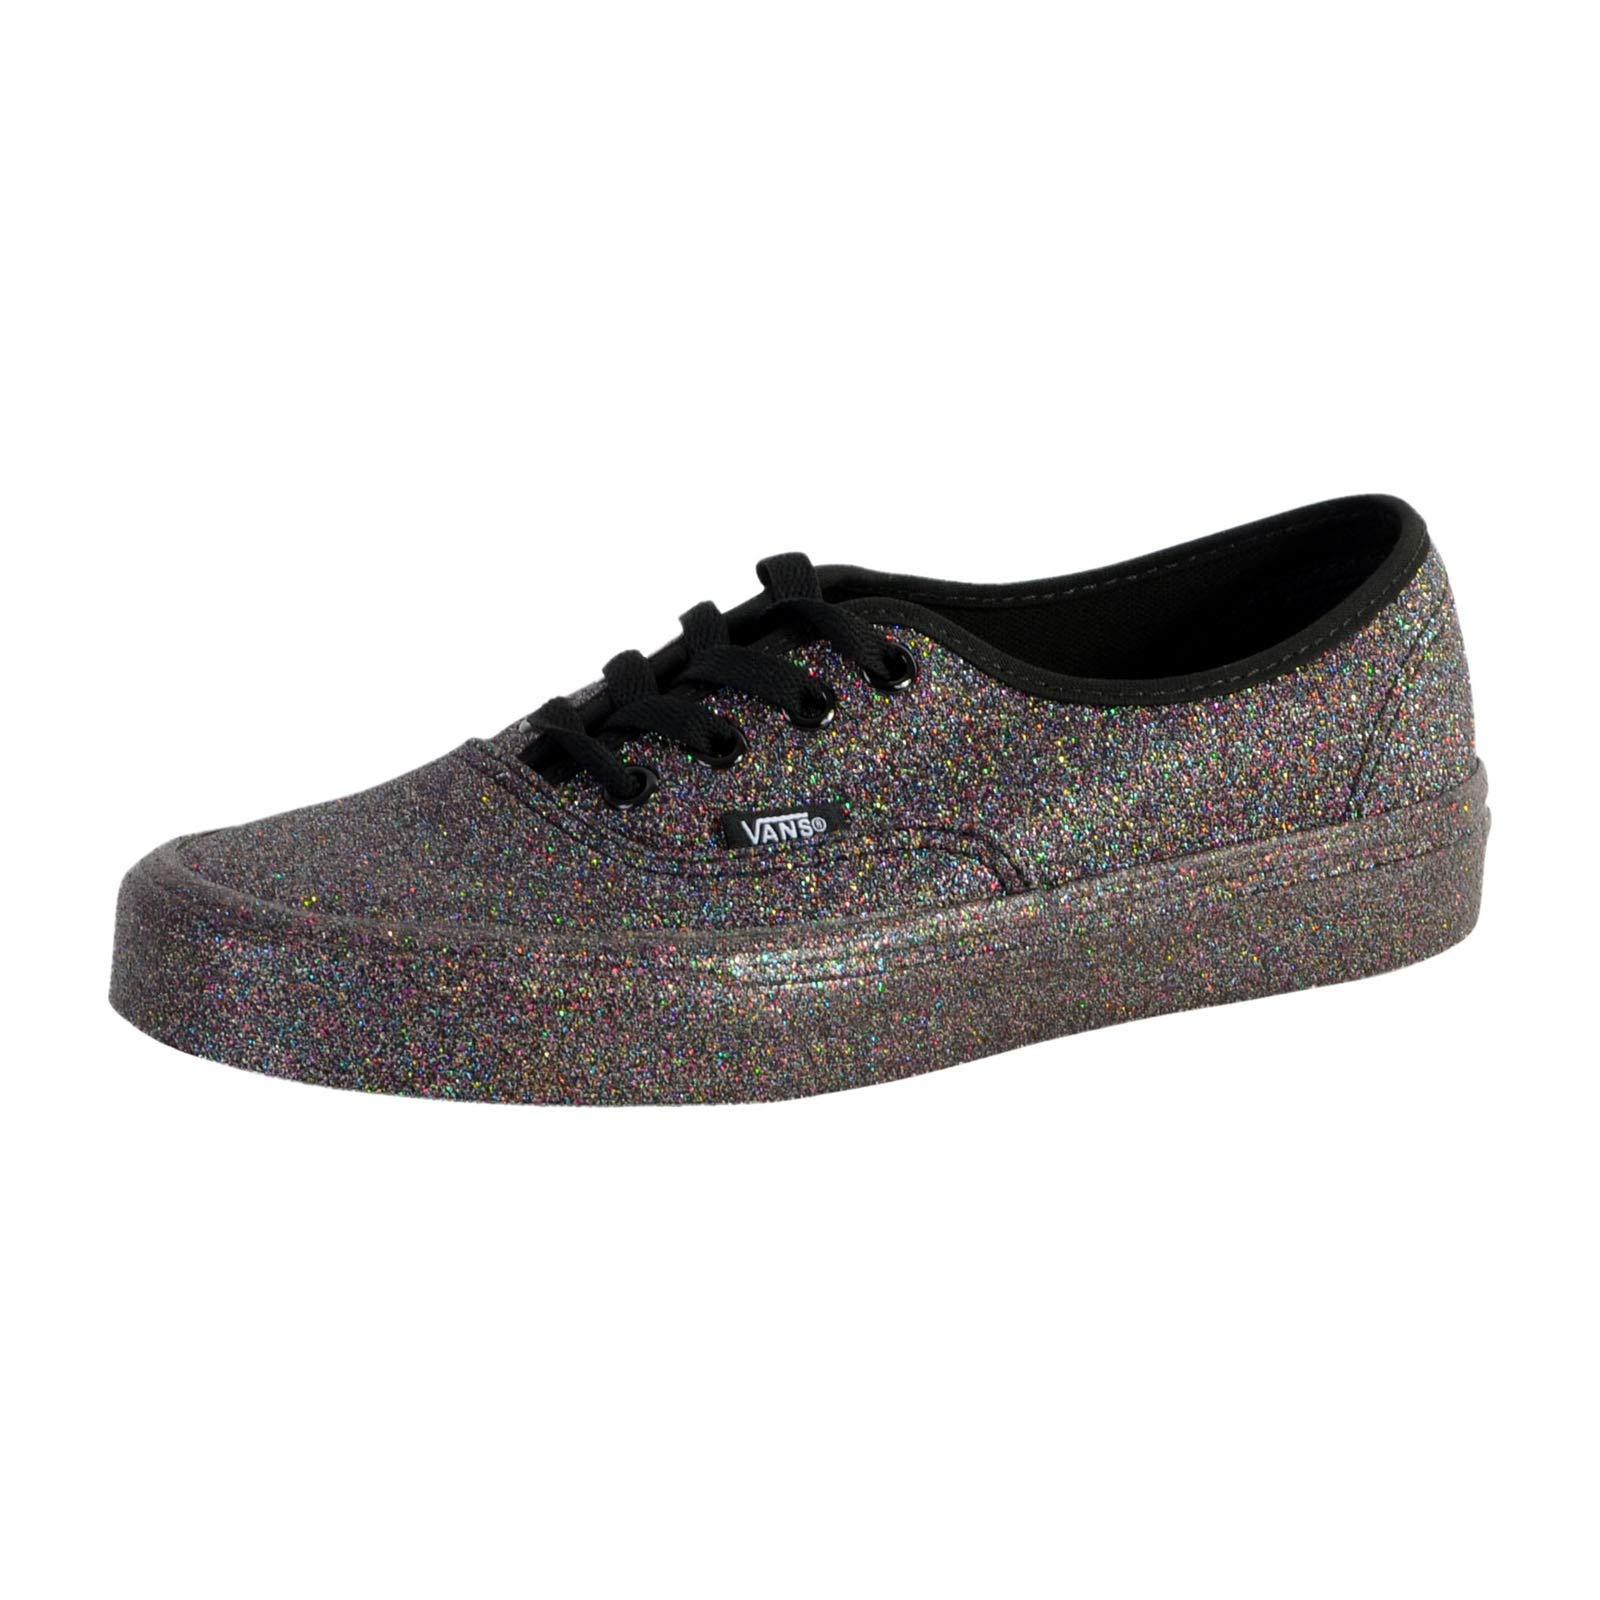 Vans Womens Authentic Rainbow Glitter Black Fashion Trainers Shoes Size 5 by Vans